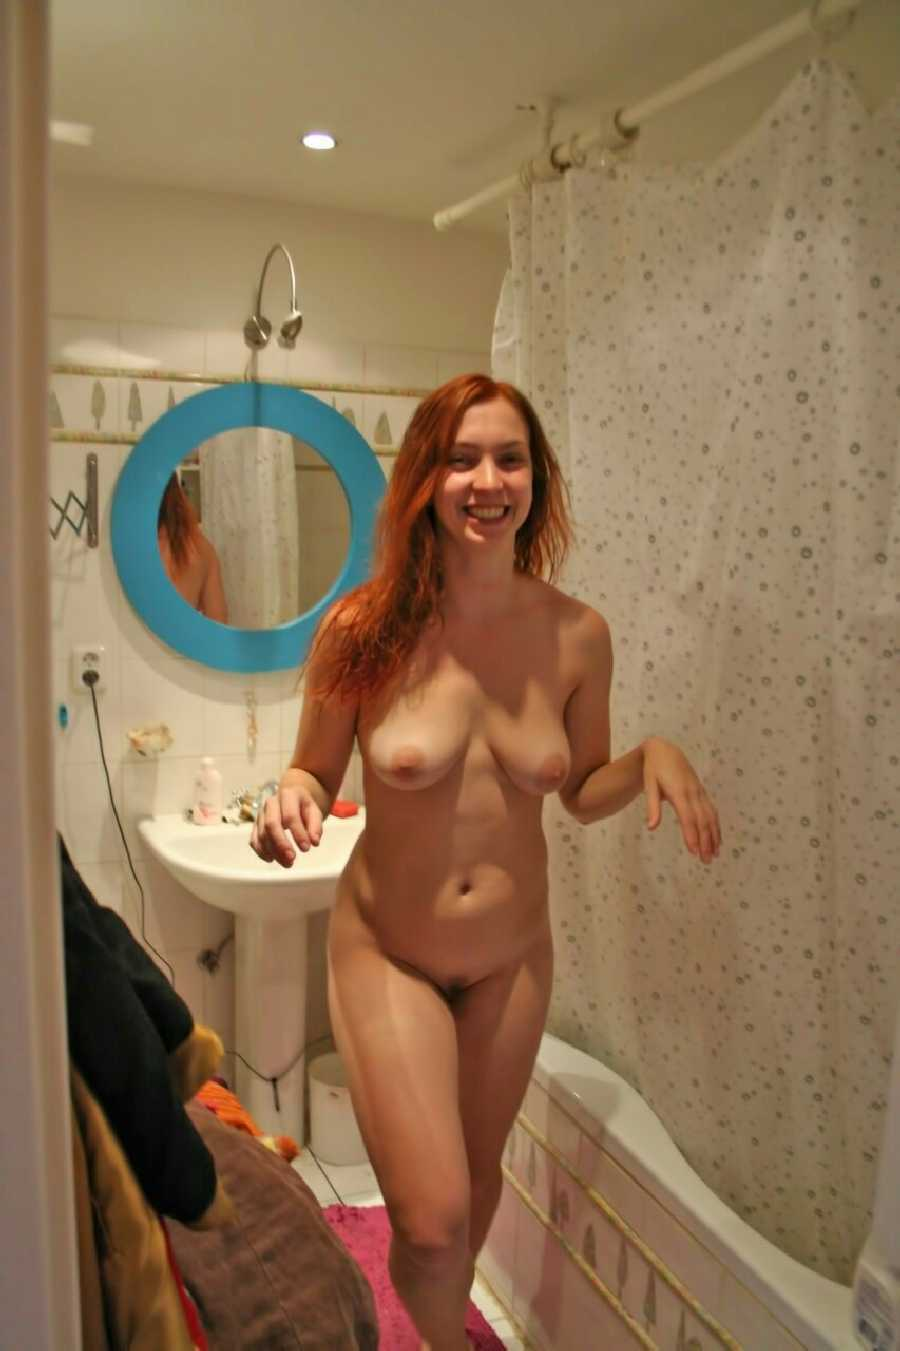 naked women in a tub